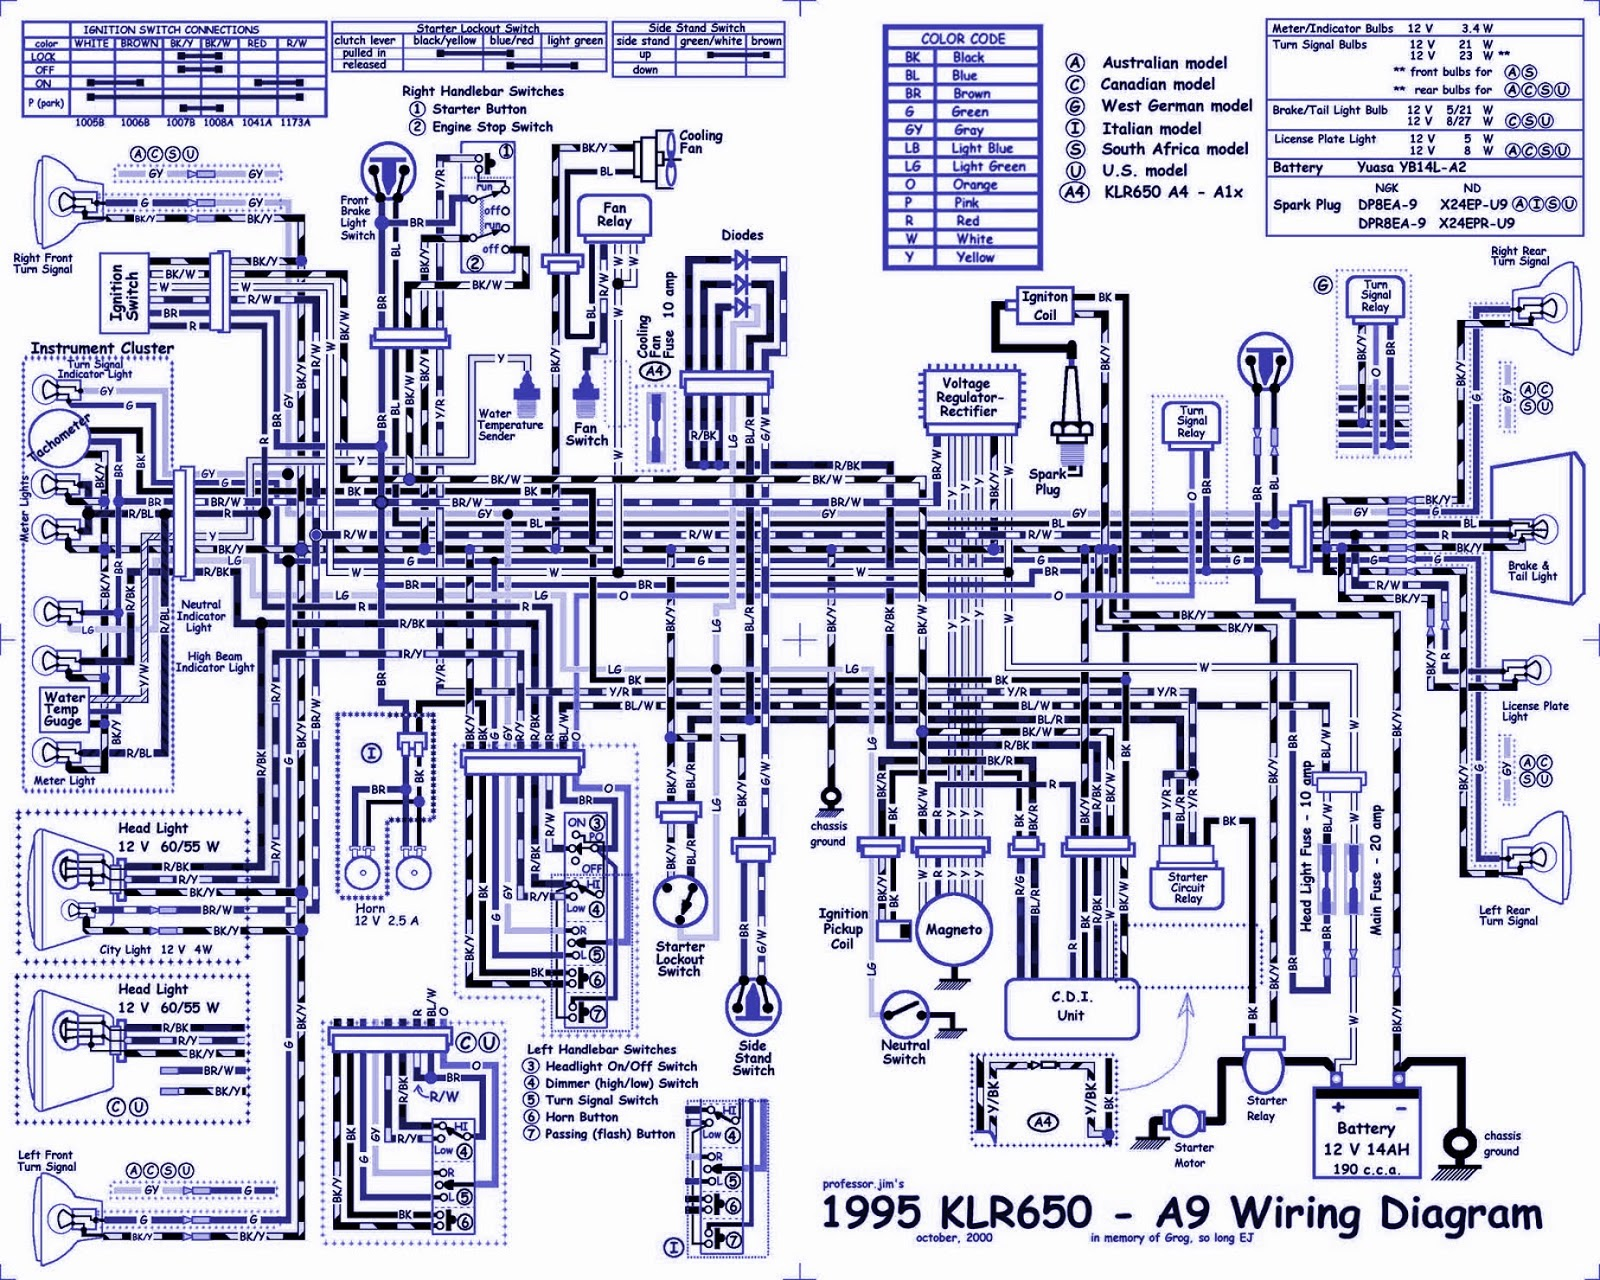 Chevrolet Monte Carlo 1974 Electrical Wiring Diagram | Auto Wiring Diagrams